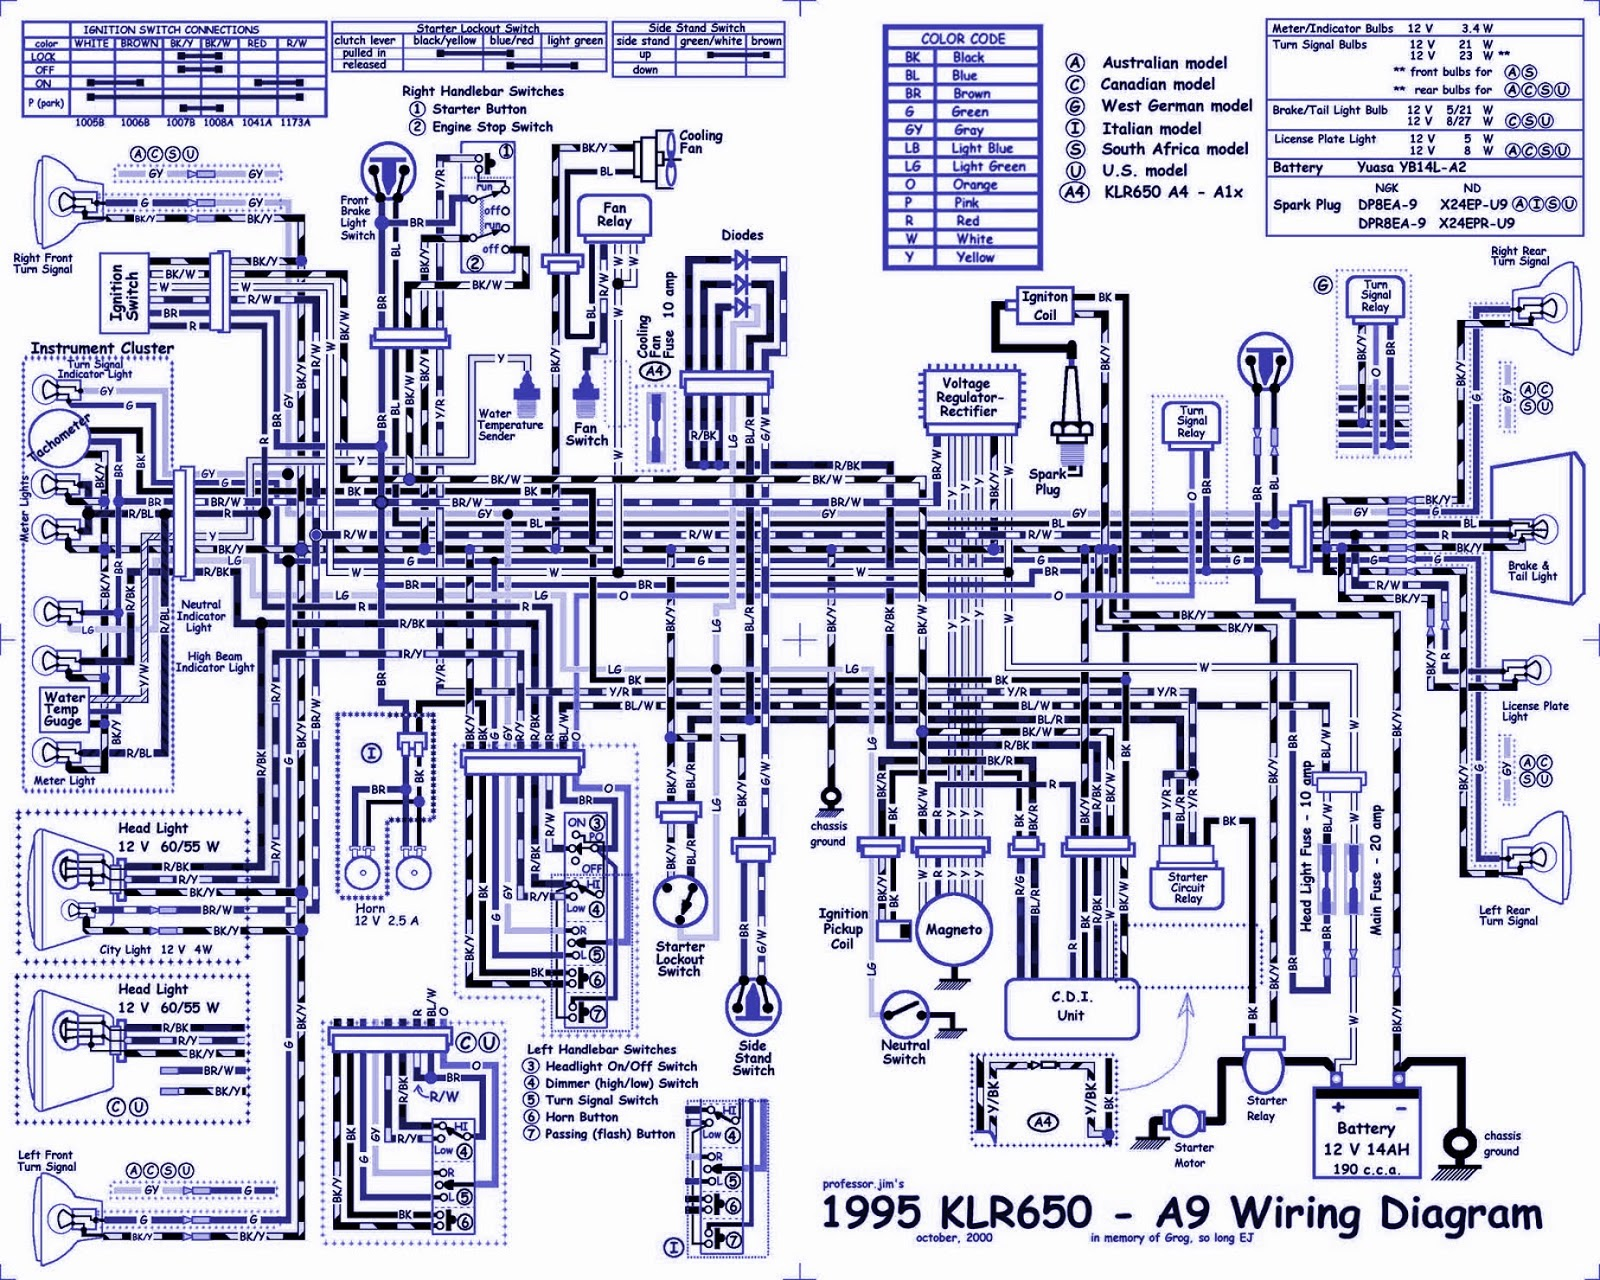 Chevrolet Monte Carlo 1974 Electrical Wiring Diagram | Auto Wiring Diagrams